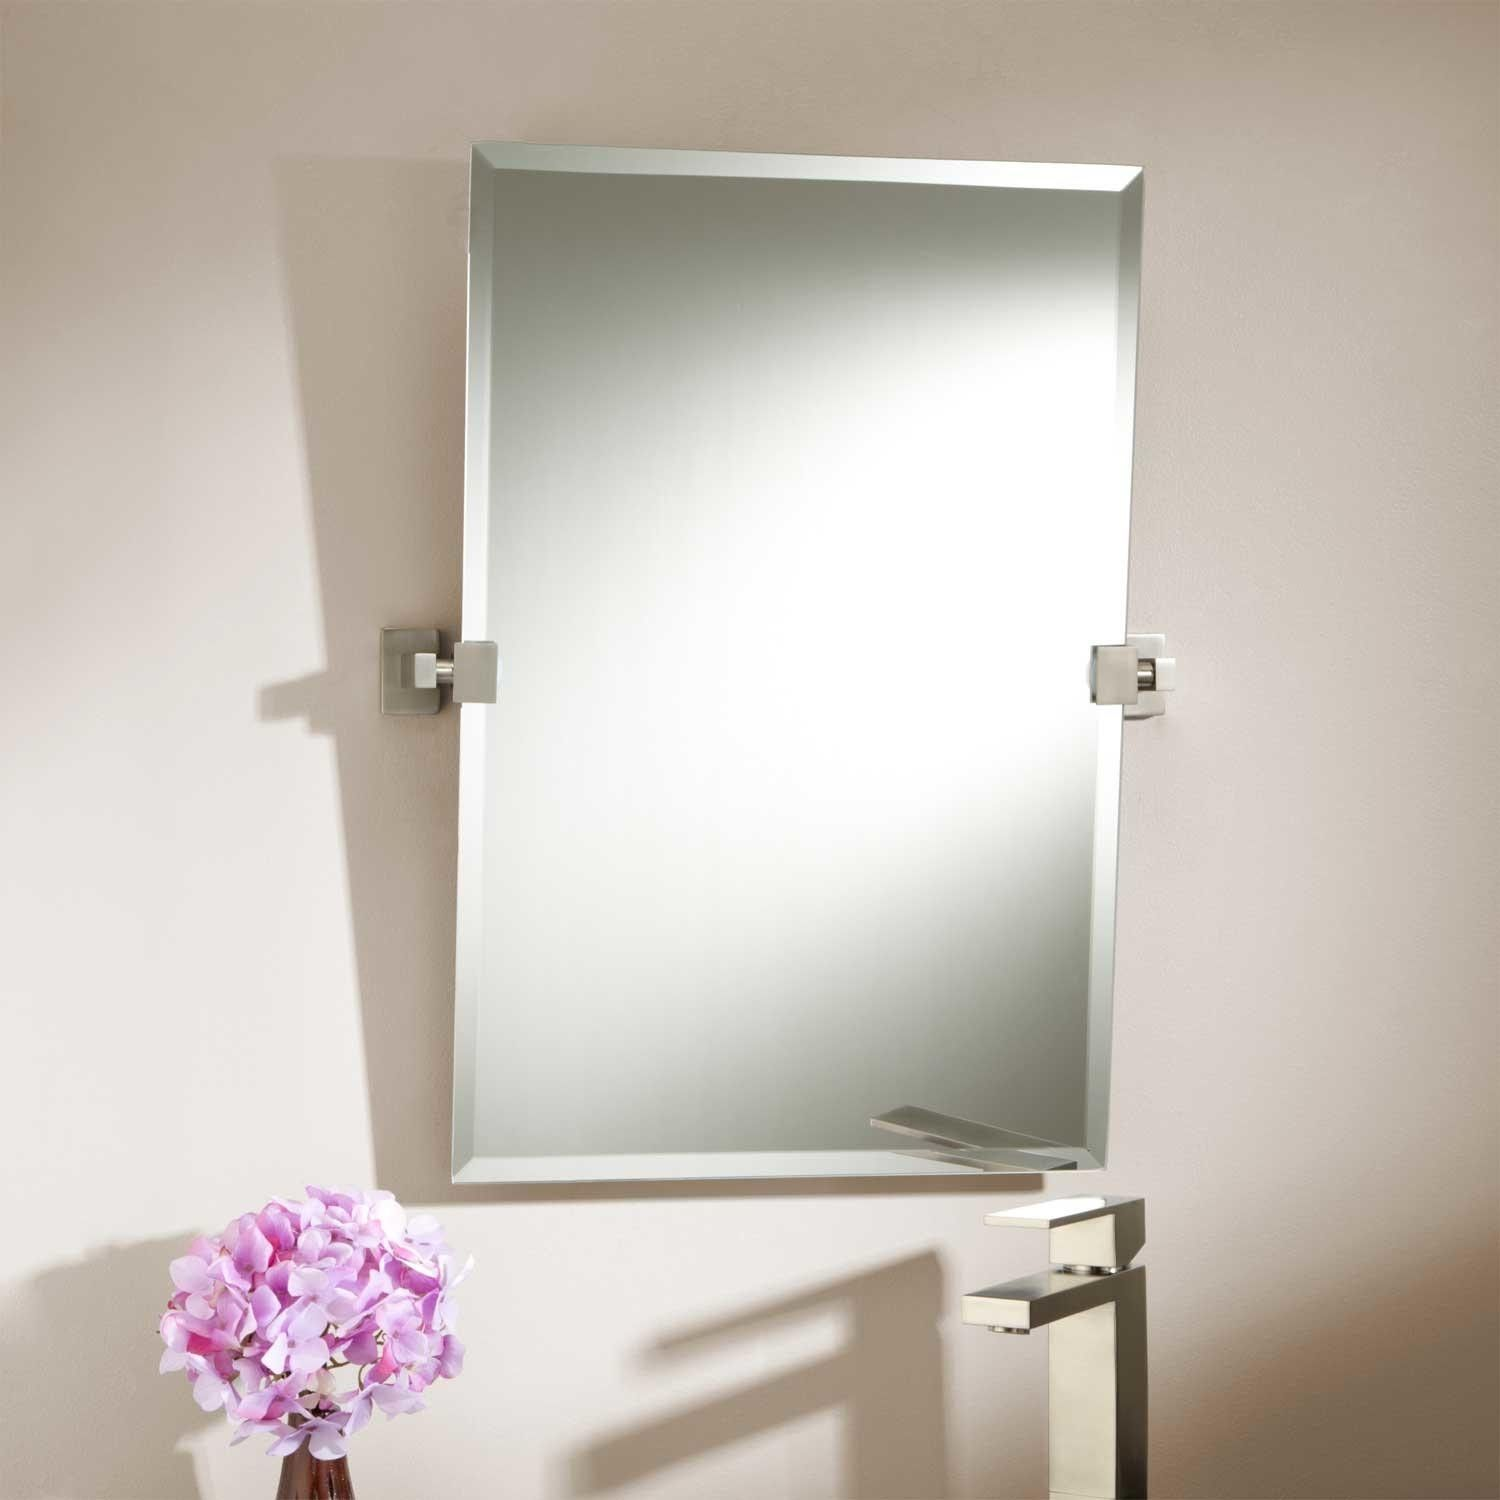 Easy Hang Bathroom Mirror | Home: Bathroom | Pinterest | Bathroom ...